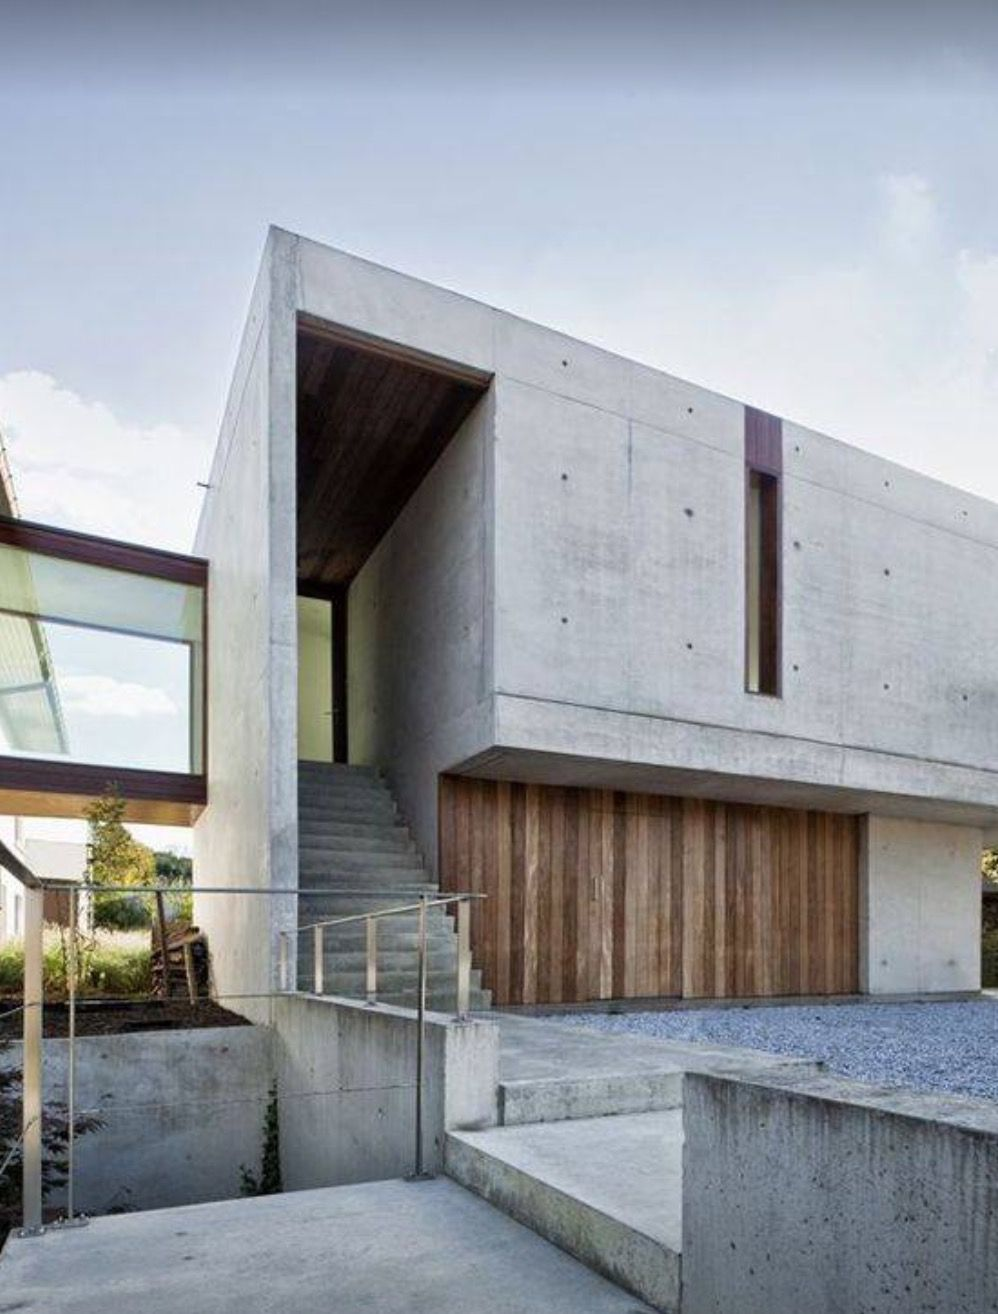 Modern Concrete House With Glass Walls: Pin By 宏齊 張 On 建築 In 2019